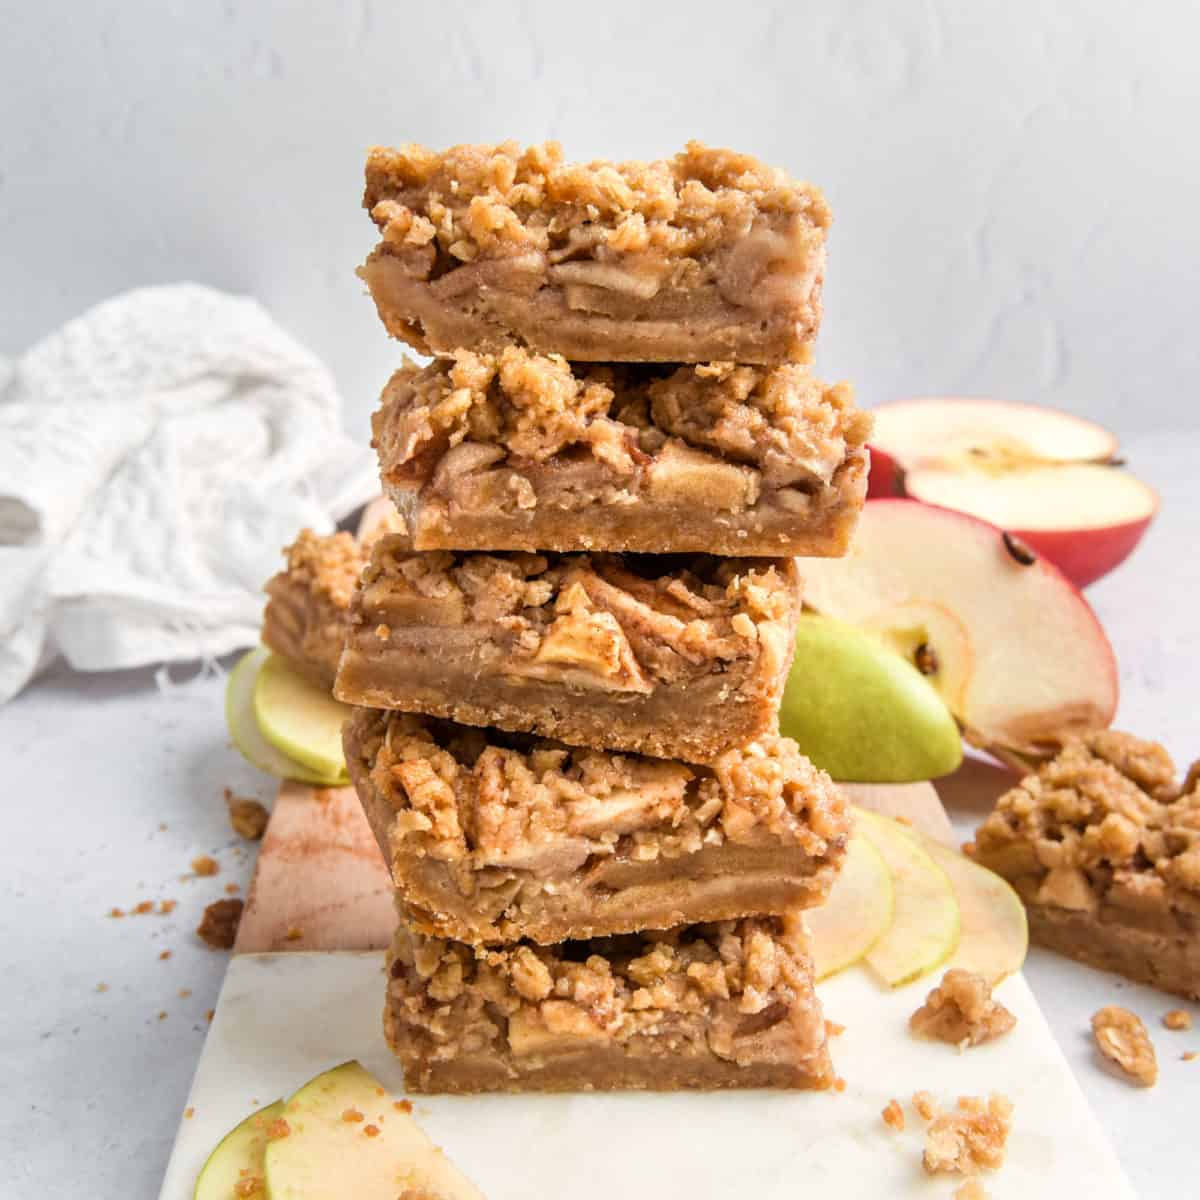 A stack of five bars with fresh apple slices in the background.